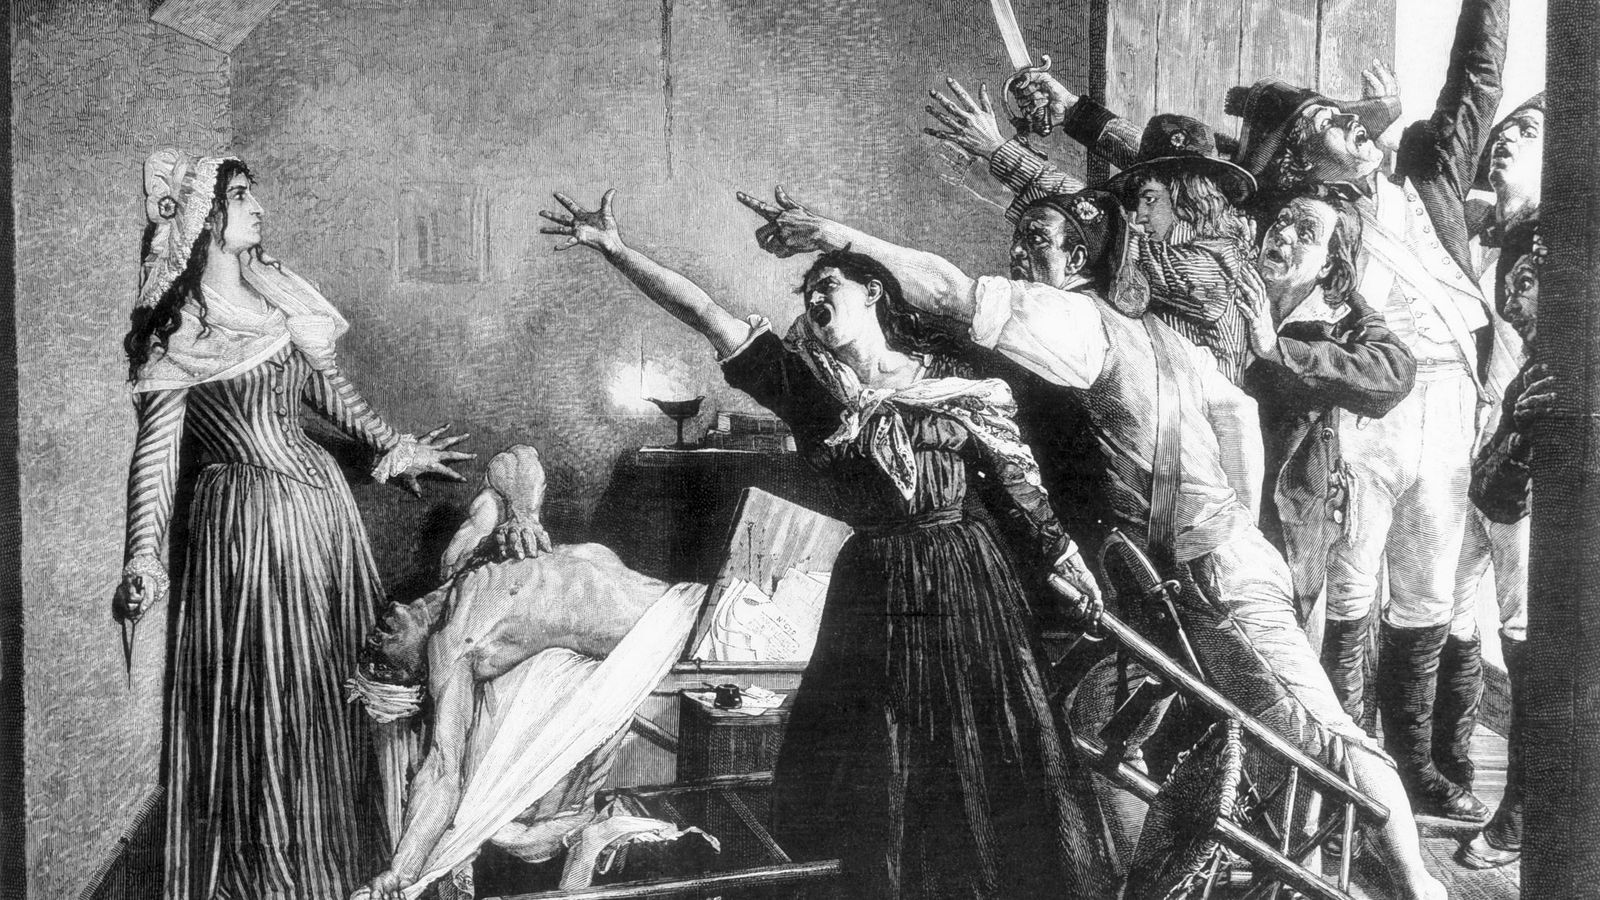 Esta gravura do século 19 retrata o momento após o assassinato do revolucionário francês Jean-Paul Marat ...